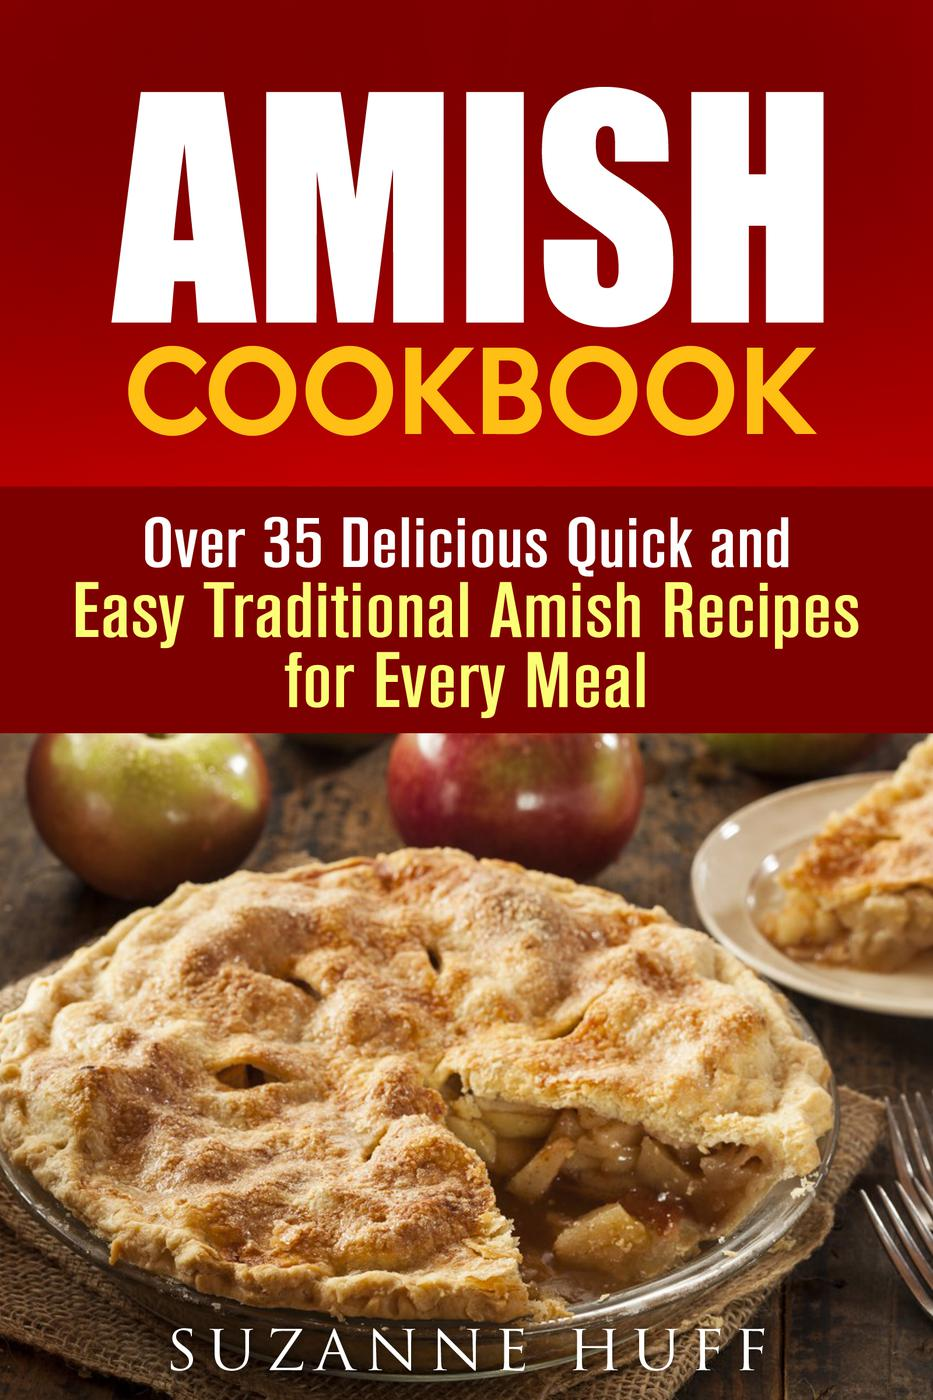 Amish Cookbook: Over 35 Delicious Quick and Easy Traditional Amish Recipes for Every Meal (Authentic Meals)